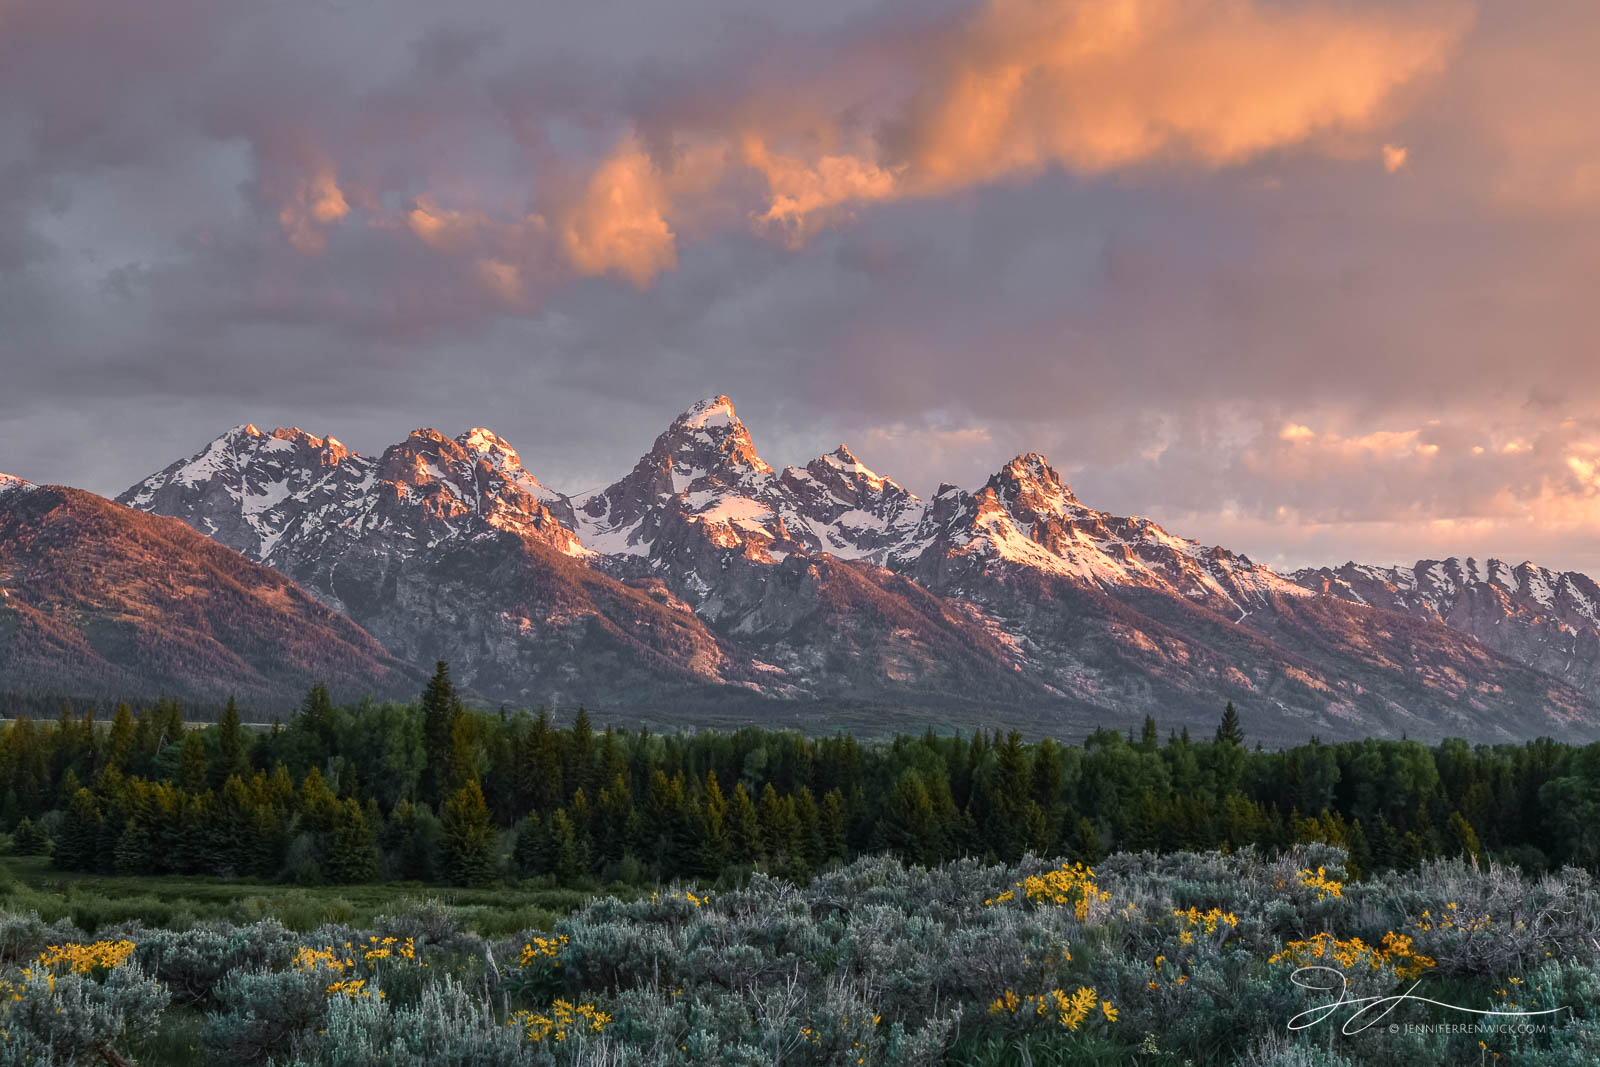 Grand Teton National Park, Wyoming, mountains, landscape, wildflowers, sunrise, clouds, Jackson Hole, Antelope Flats, Gros Ventre, photo